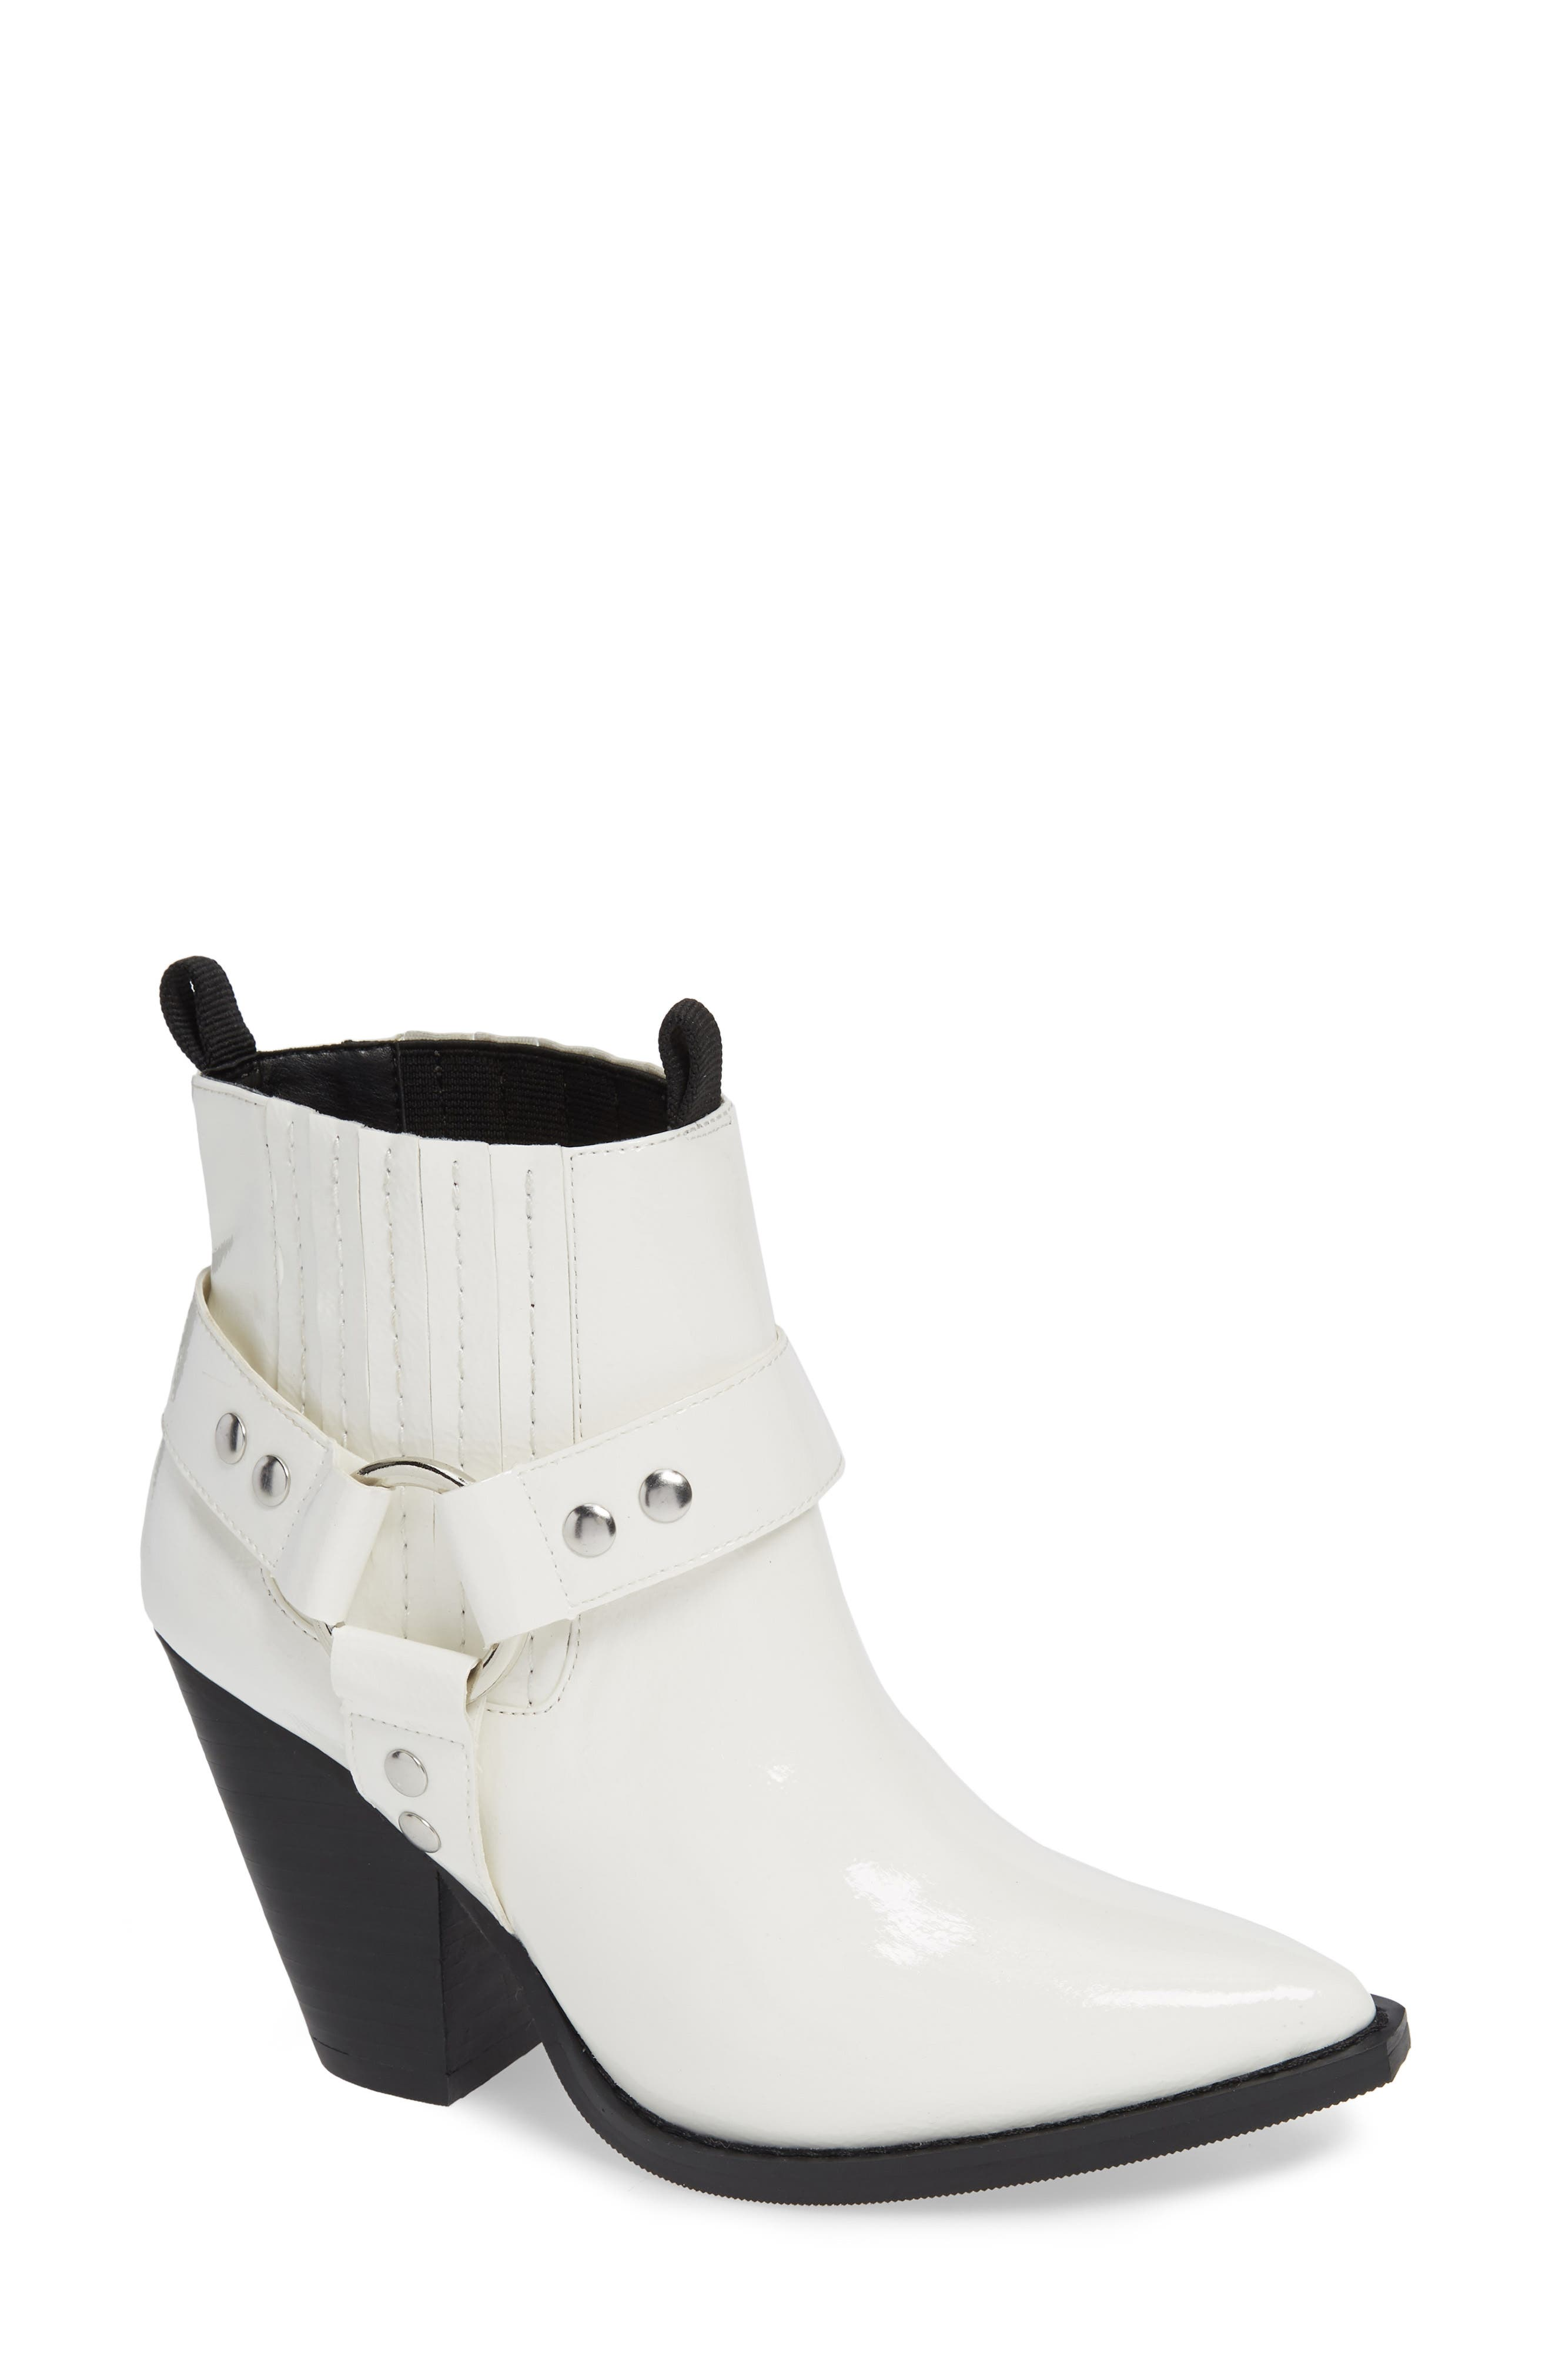 Jane And The Shoe Lincoln Bootie, White